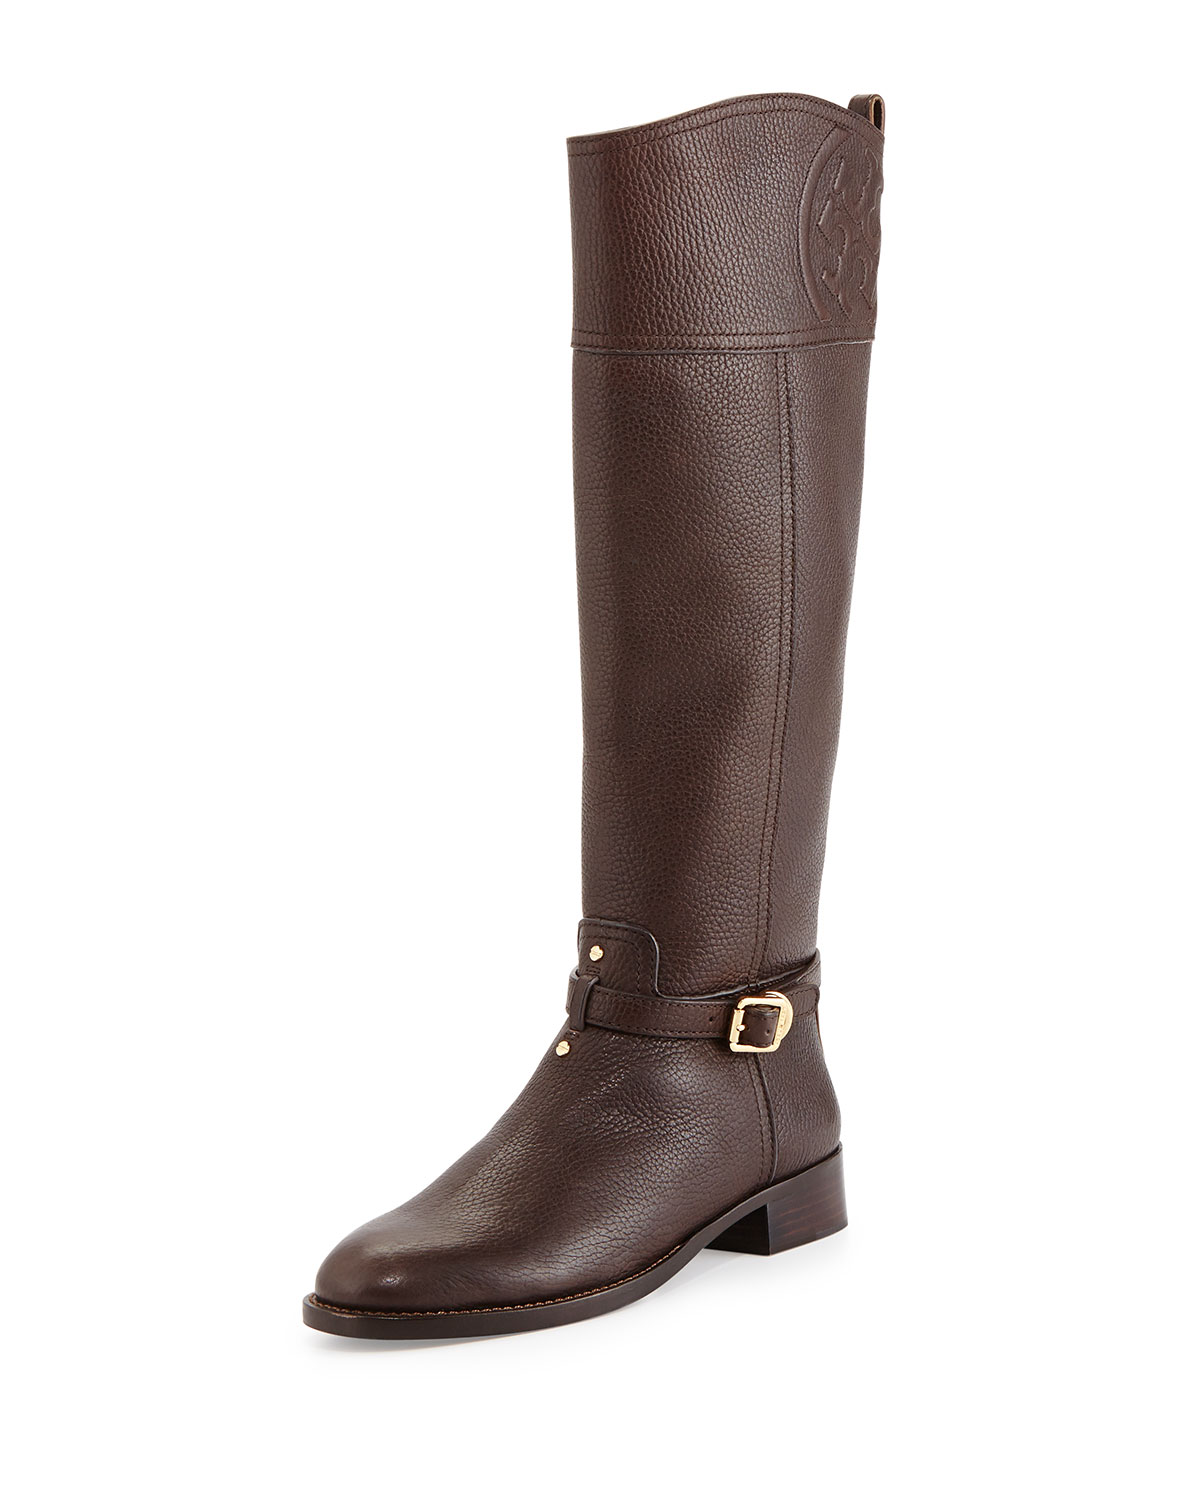 3a5754e500c6 Tory Burch Marlene Leather Riding Boot